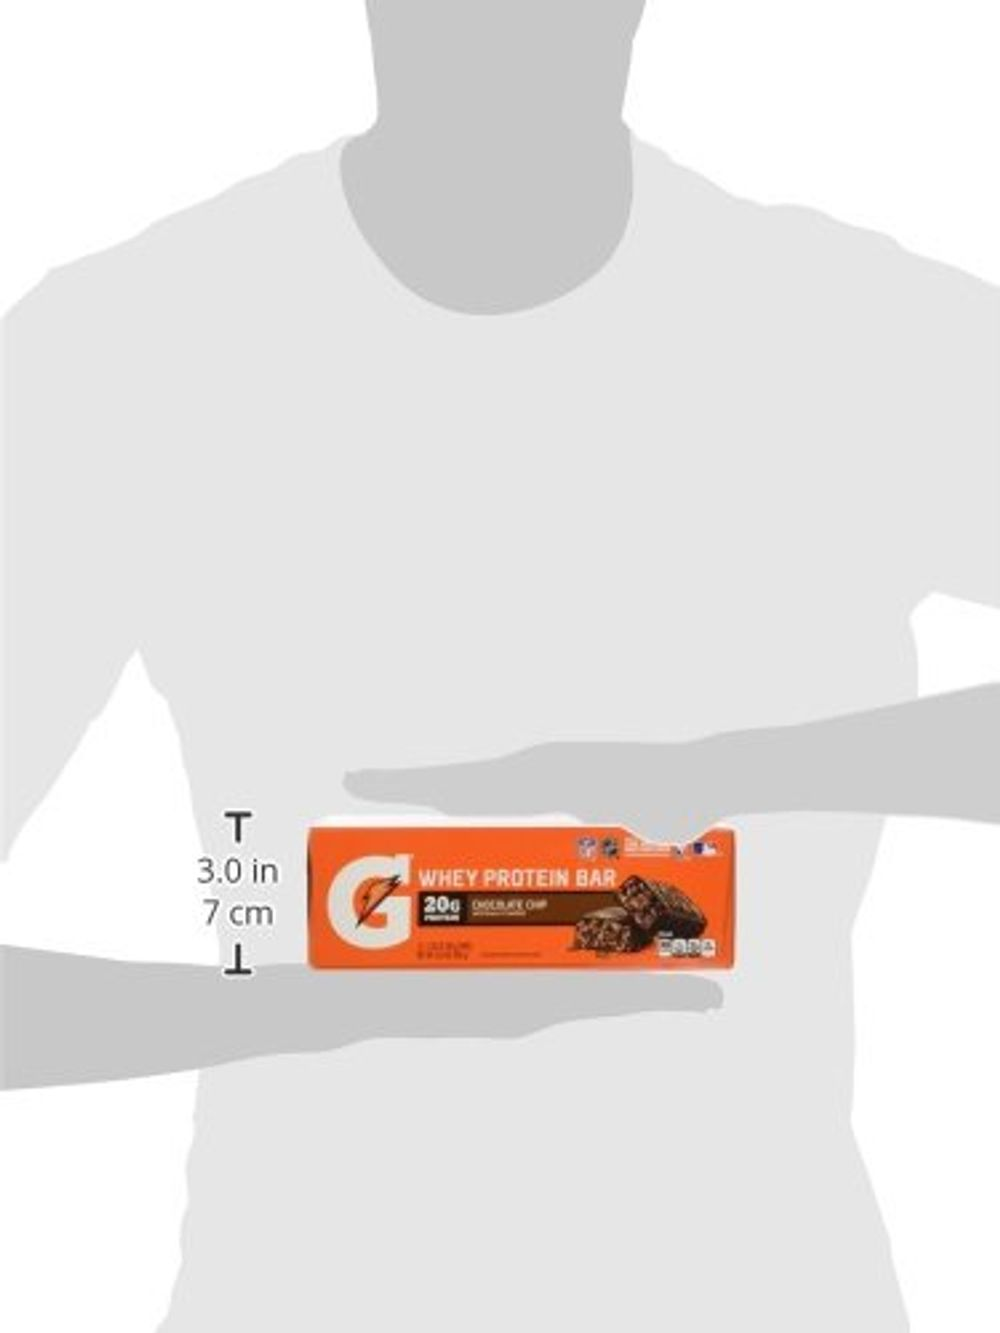 Gatorade Whey Protein Recover Bars, Chocolate Chip, 2.8 ounce bars (12 Count)